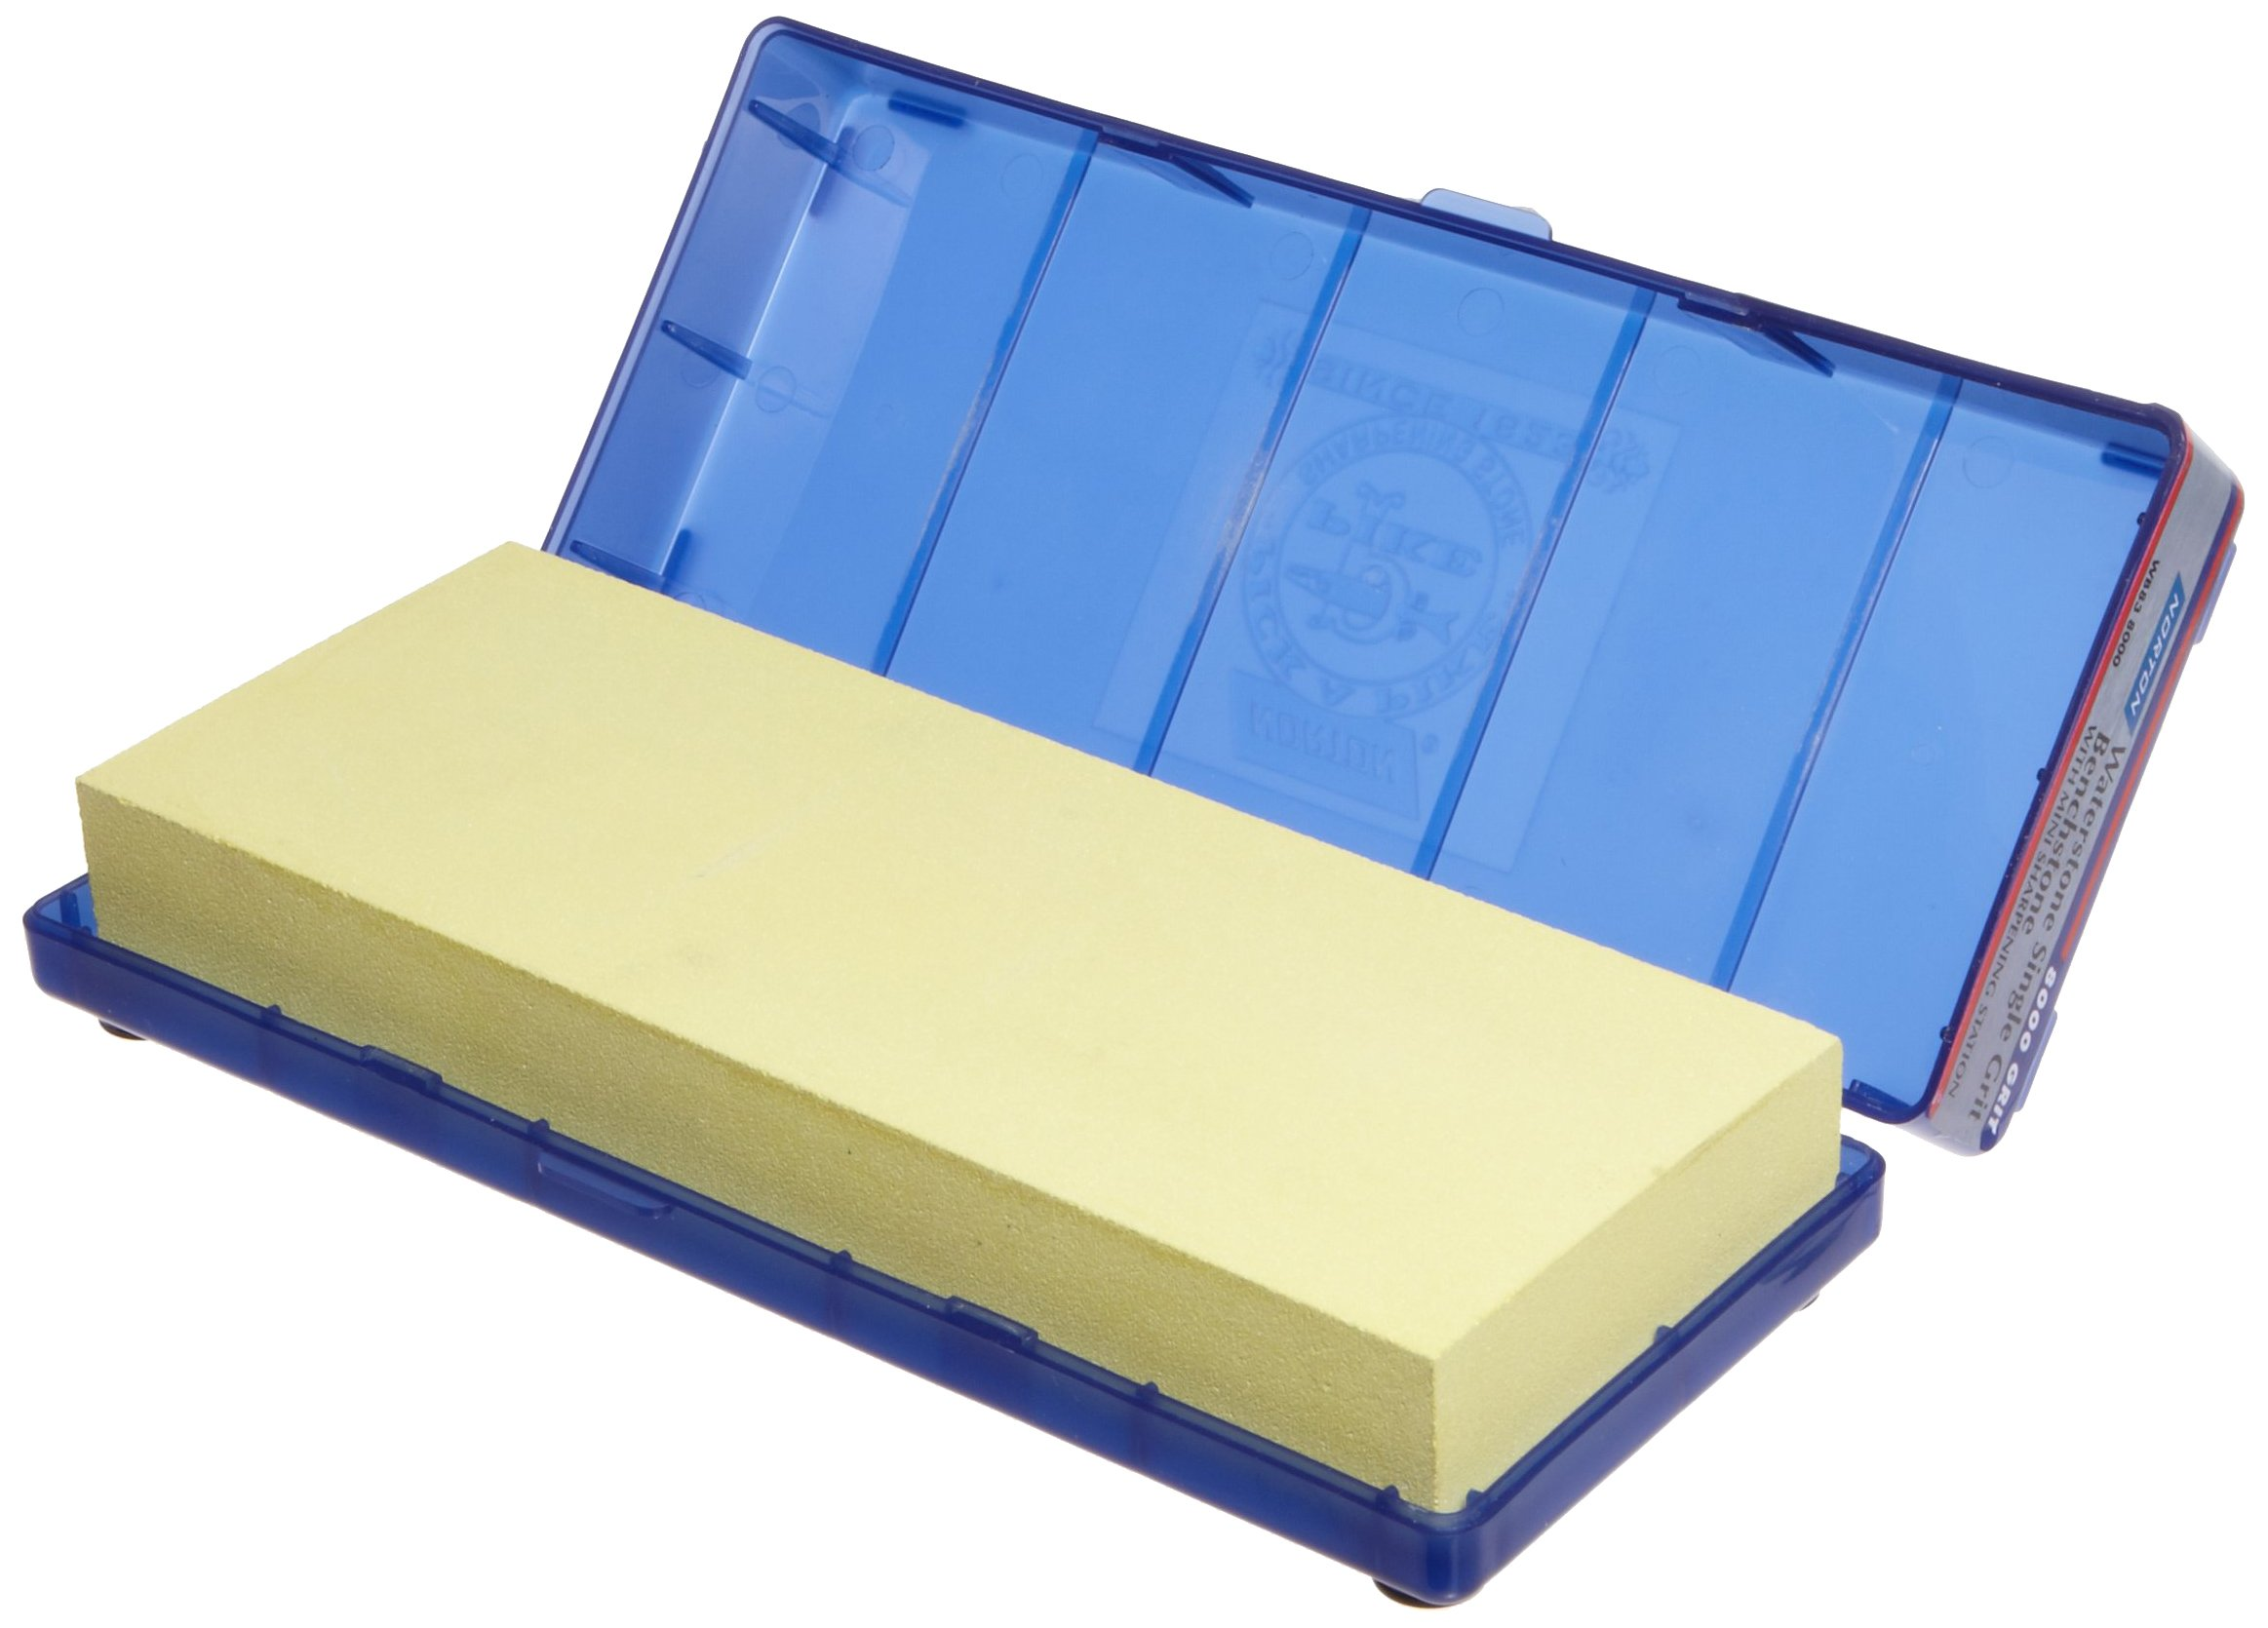 Norton Waterstone, 8000 grit, 1'' x 3'' x 8'' in Blue Plastic Hinged Box by Norton Abrasives - St. Gobain (Image #1)